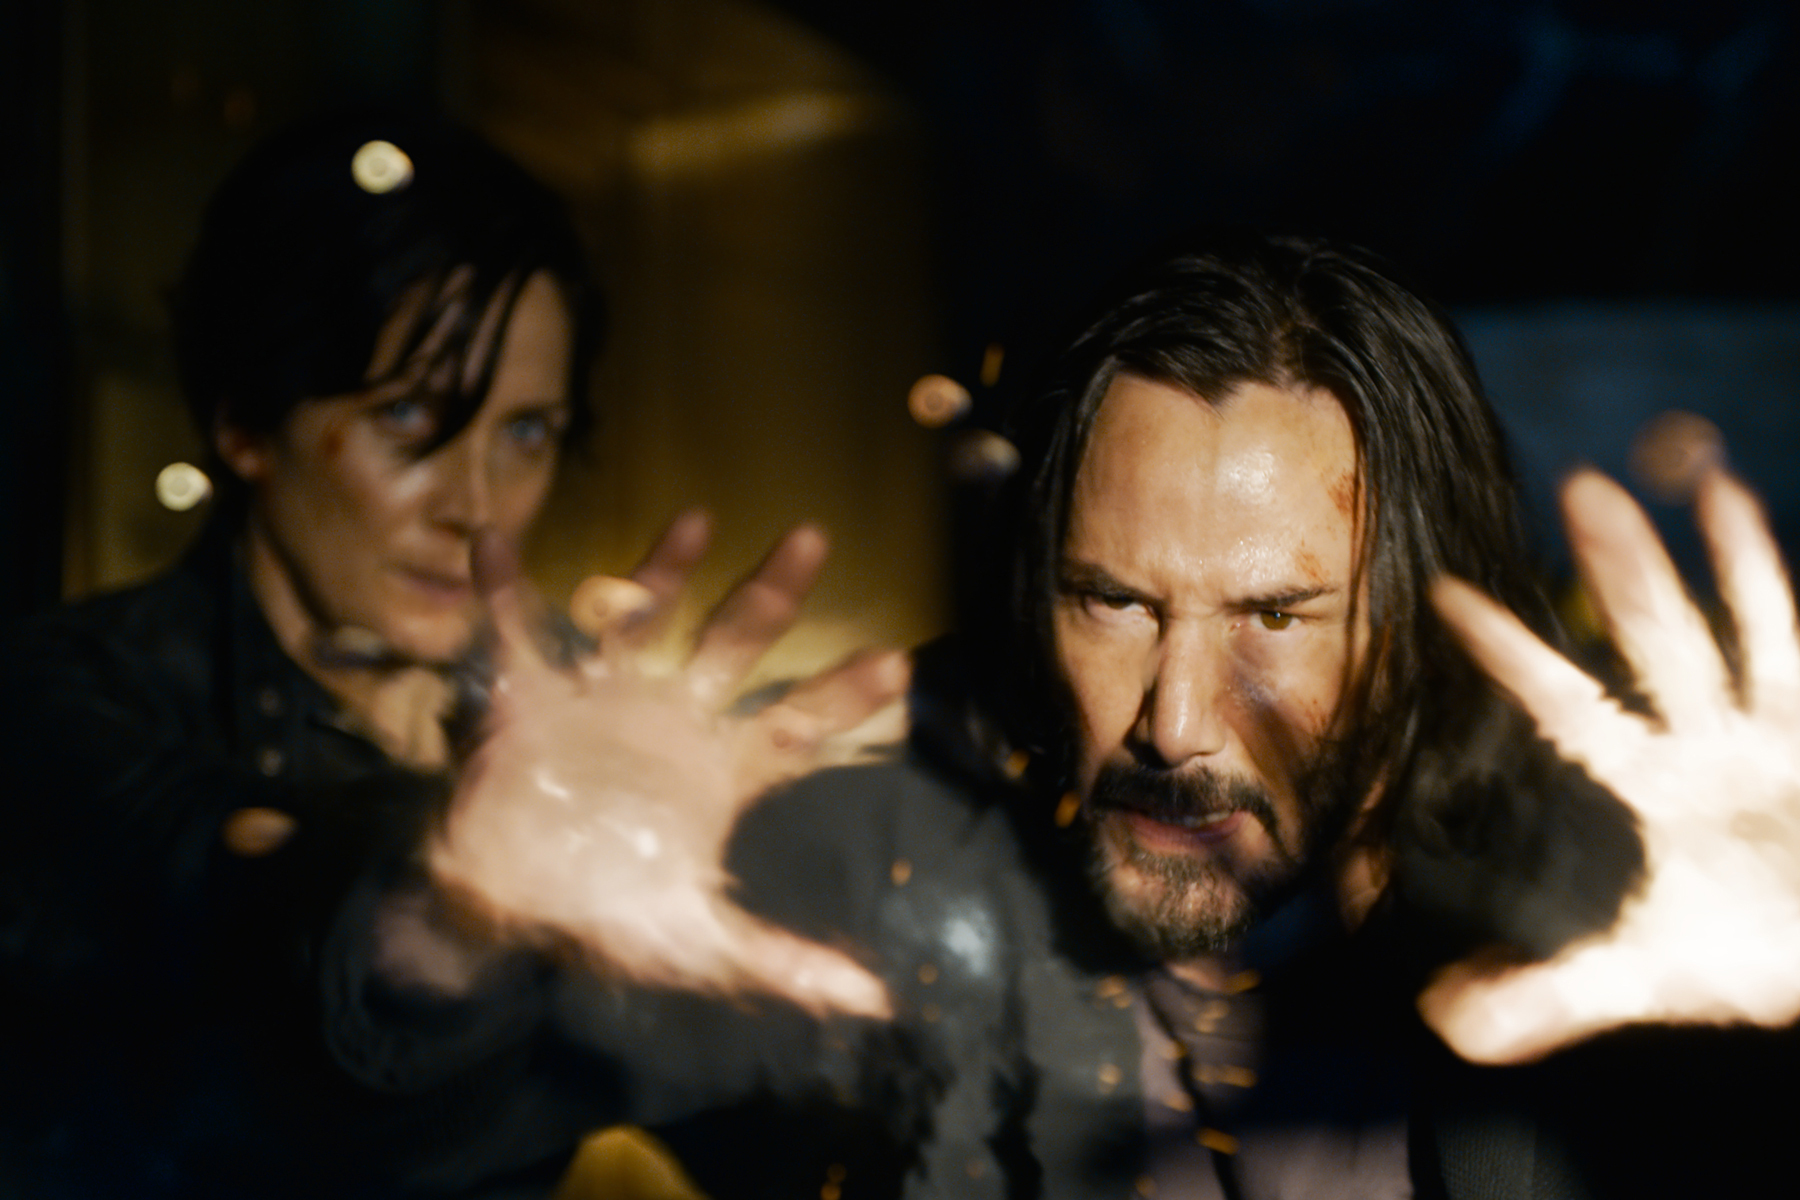 'The Matrix Resurrections' Trailer: Keanu Reeves, Carrie-Anne Moss Reacquaint in Blue Pill World